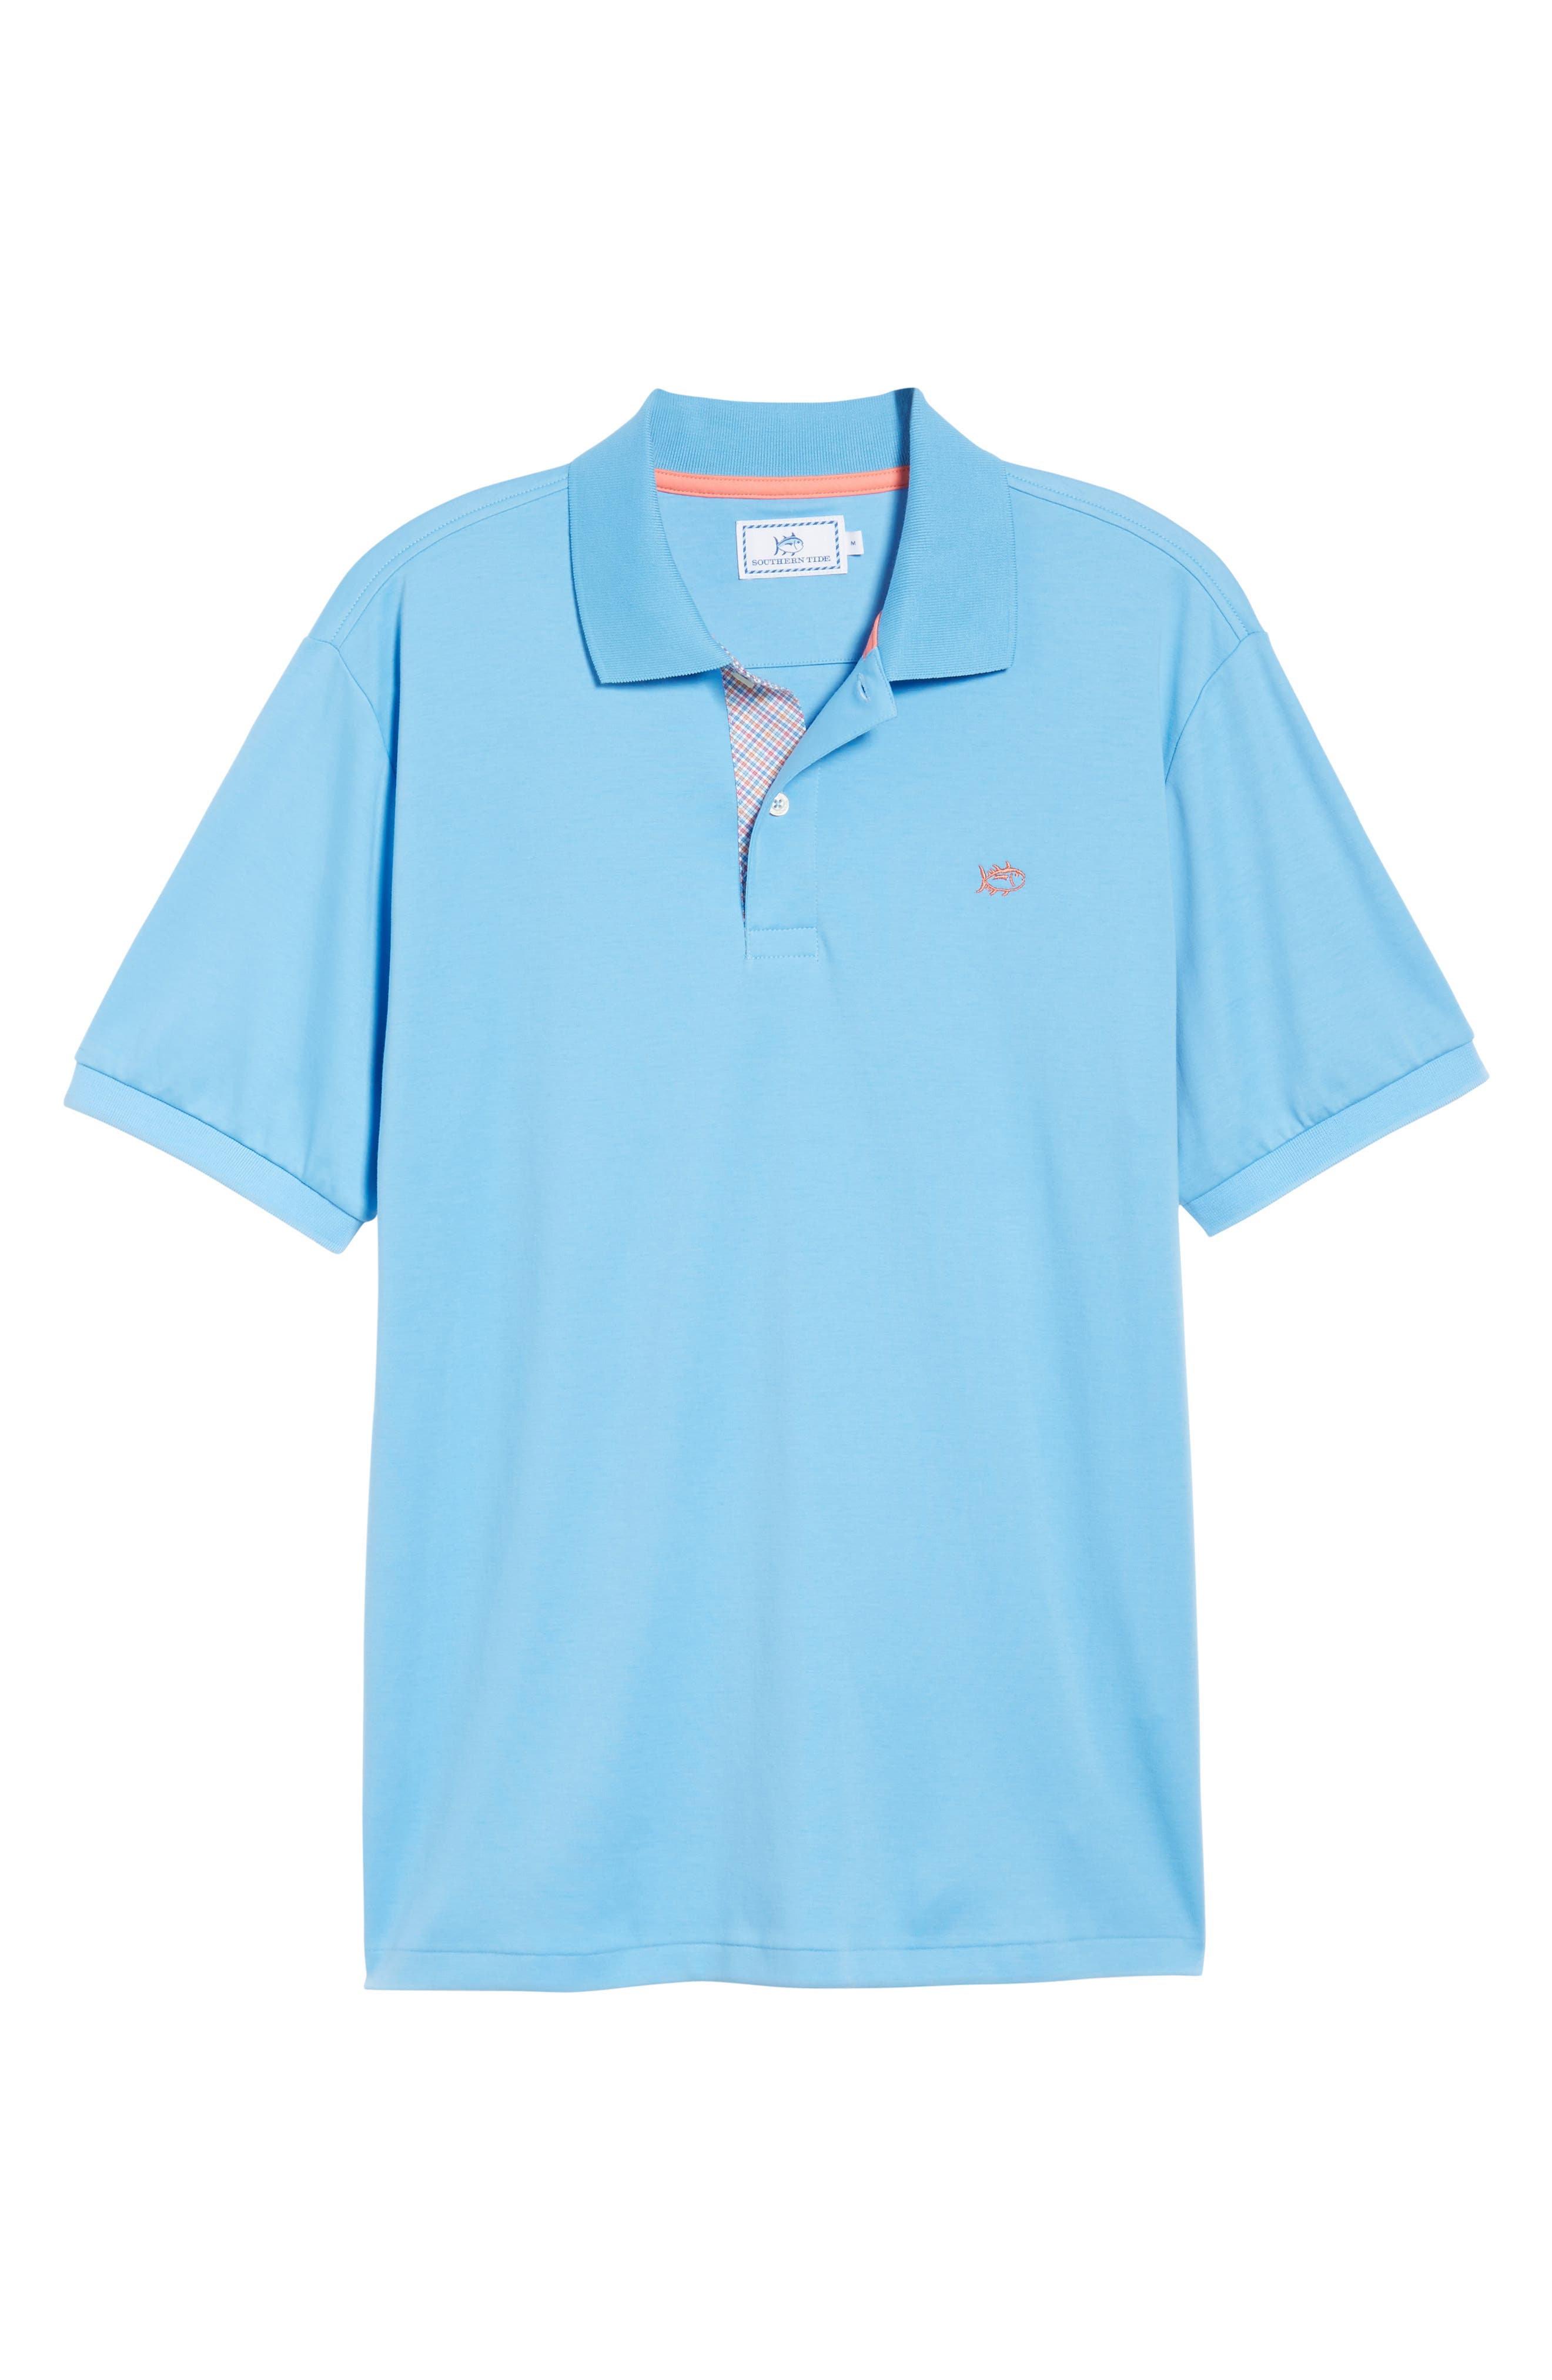 Sugar Mill Jersey Polo,                             Alternate thumbnail 6, color,                             392